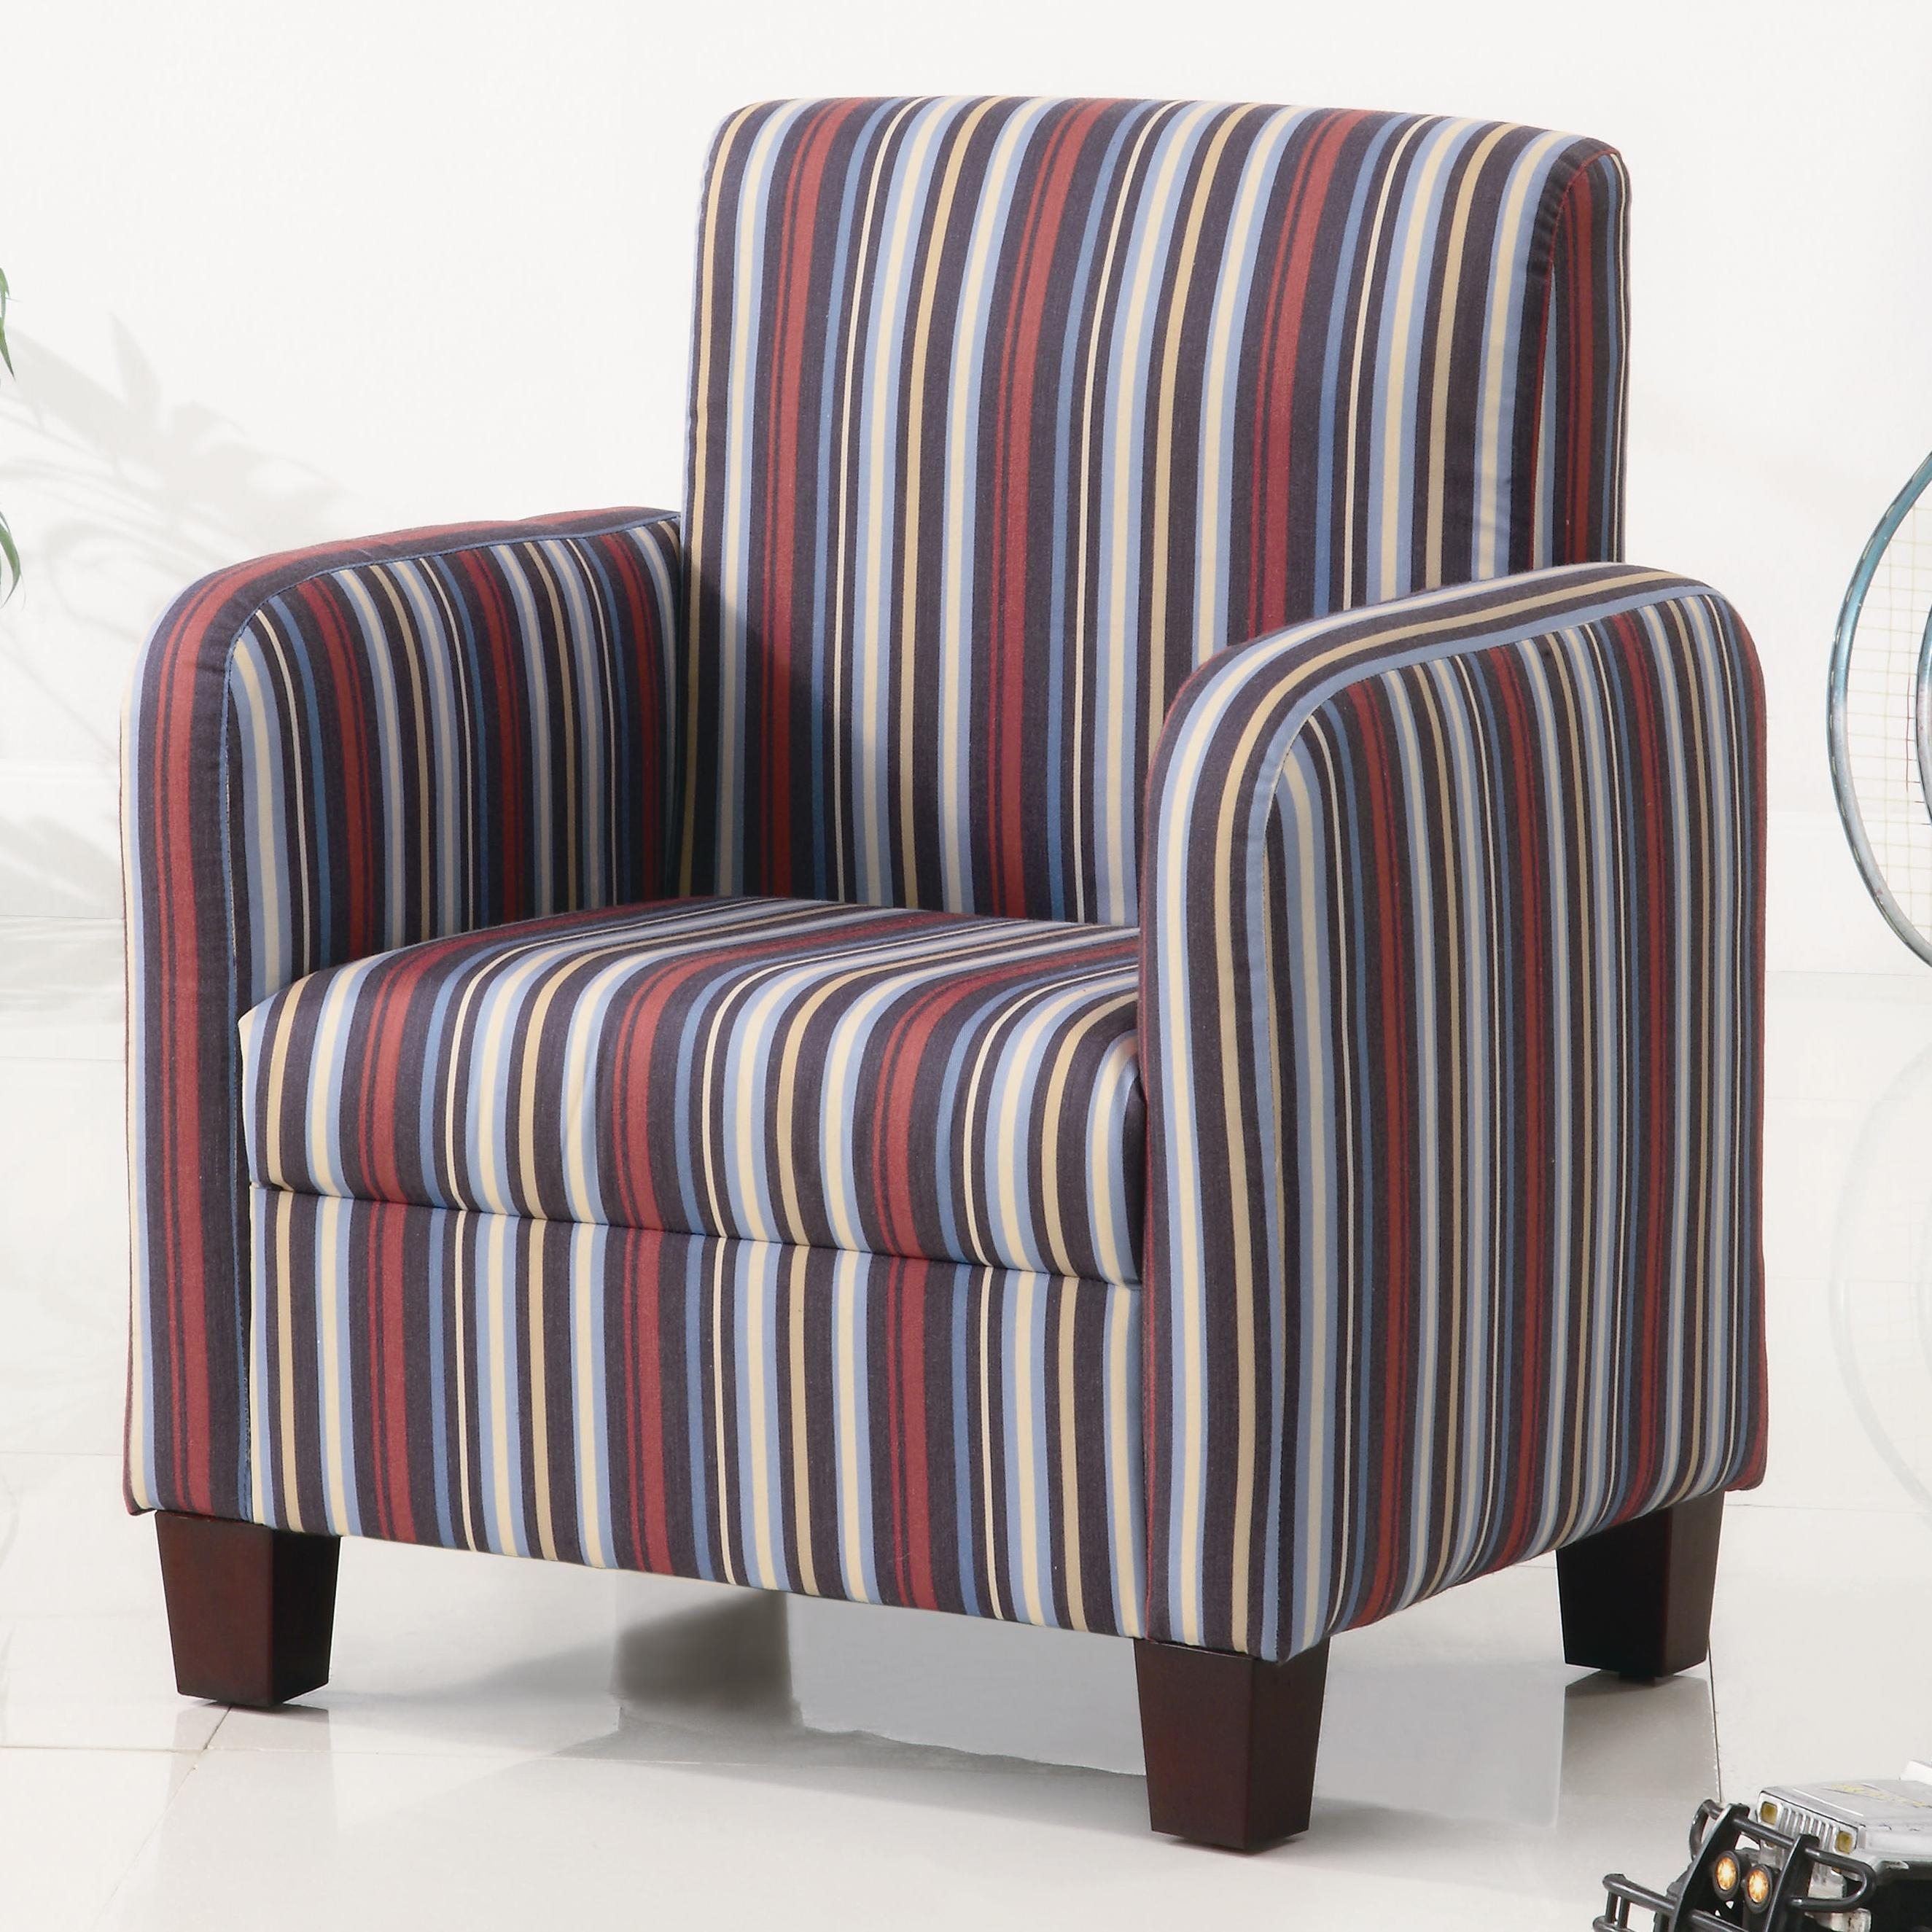 Striped Sofas And Chairs | Tehranmix Decoration Throughout Striped Sofas And Chairs (View 3 of 20)